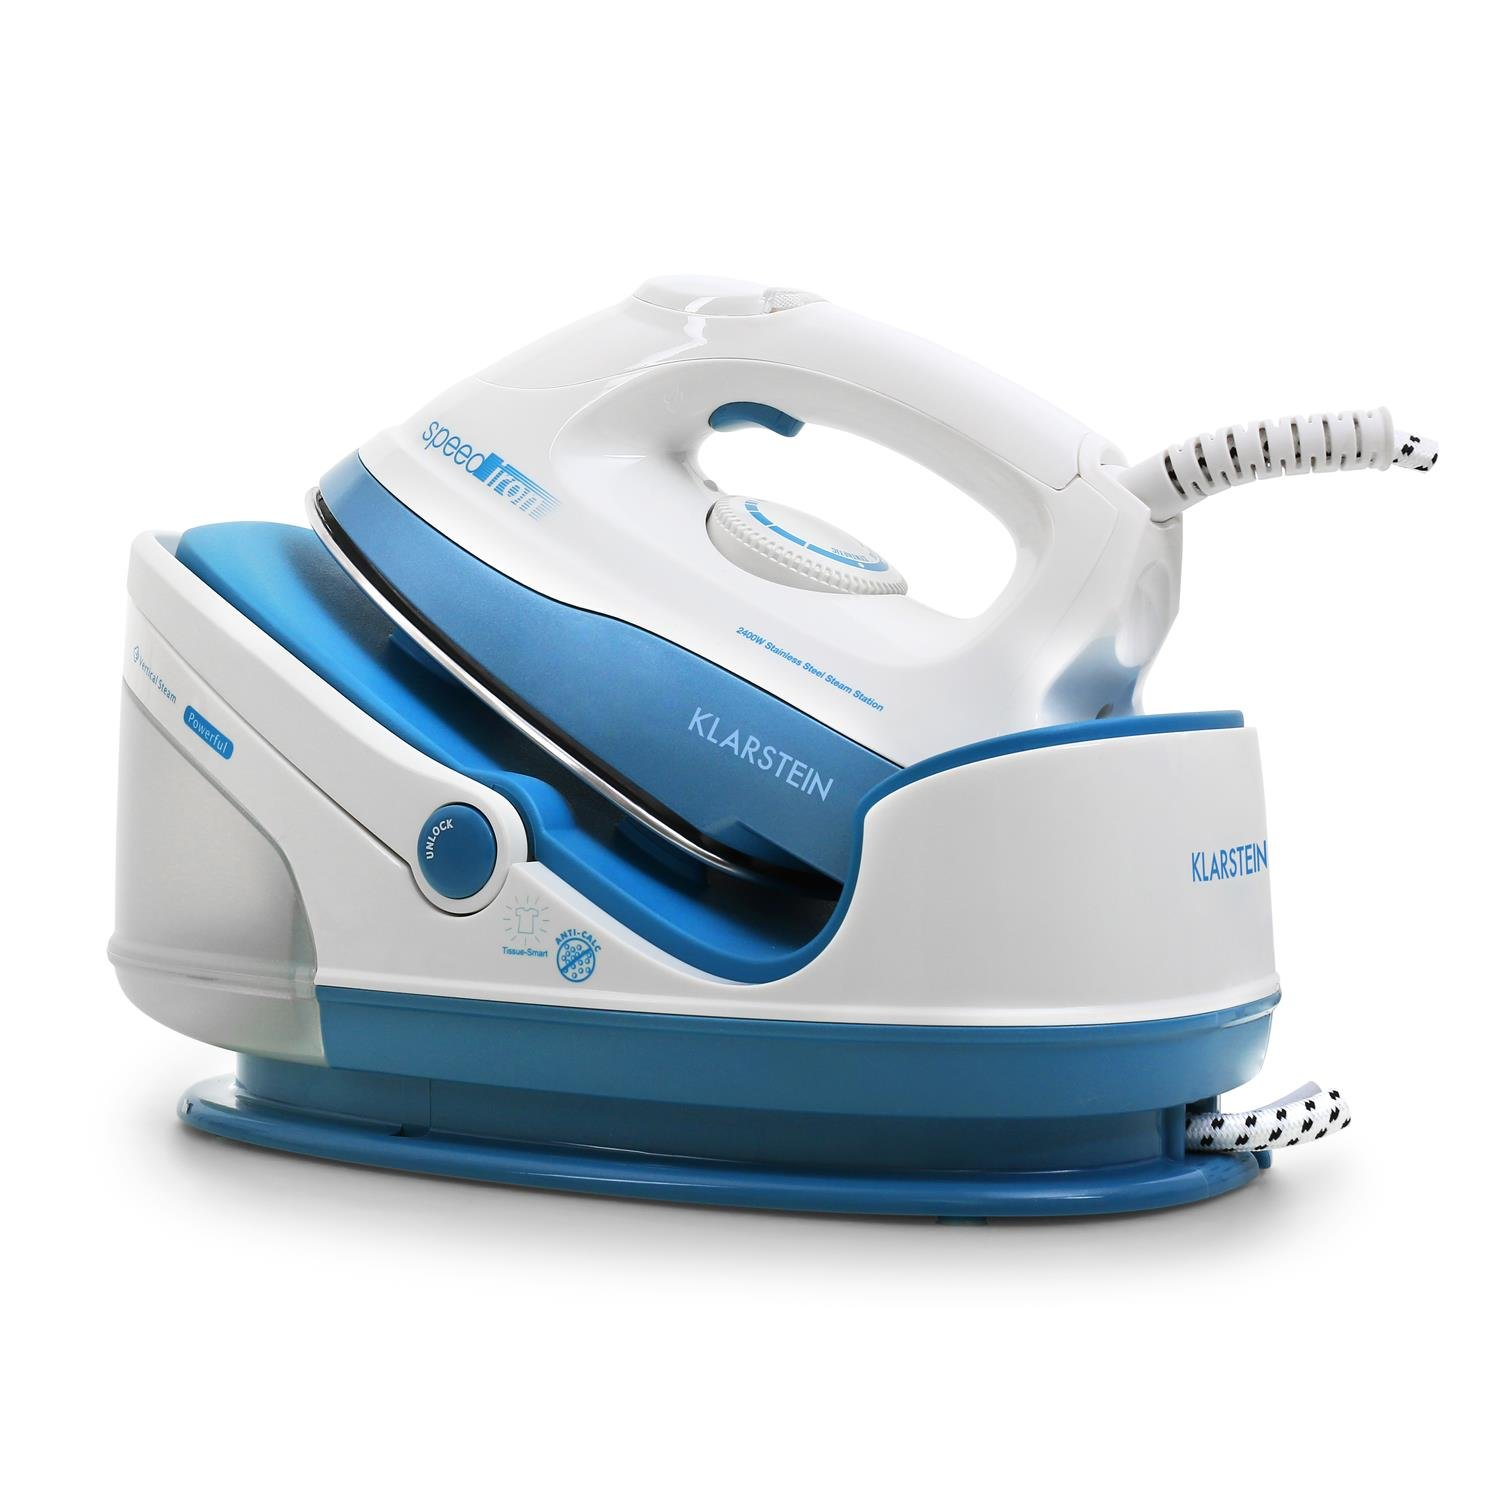 Klarstein Speed Iron • Steam Iron • Steam Iron Station • 2400W • 1.7L Capacity • Vertical Steam • 3.5-bar Steam Pressure 90g/min Volume • 68 Nozzles • Stainless Sole • Anti-Lime Cartridge • Blue-Grey